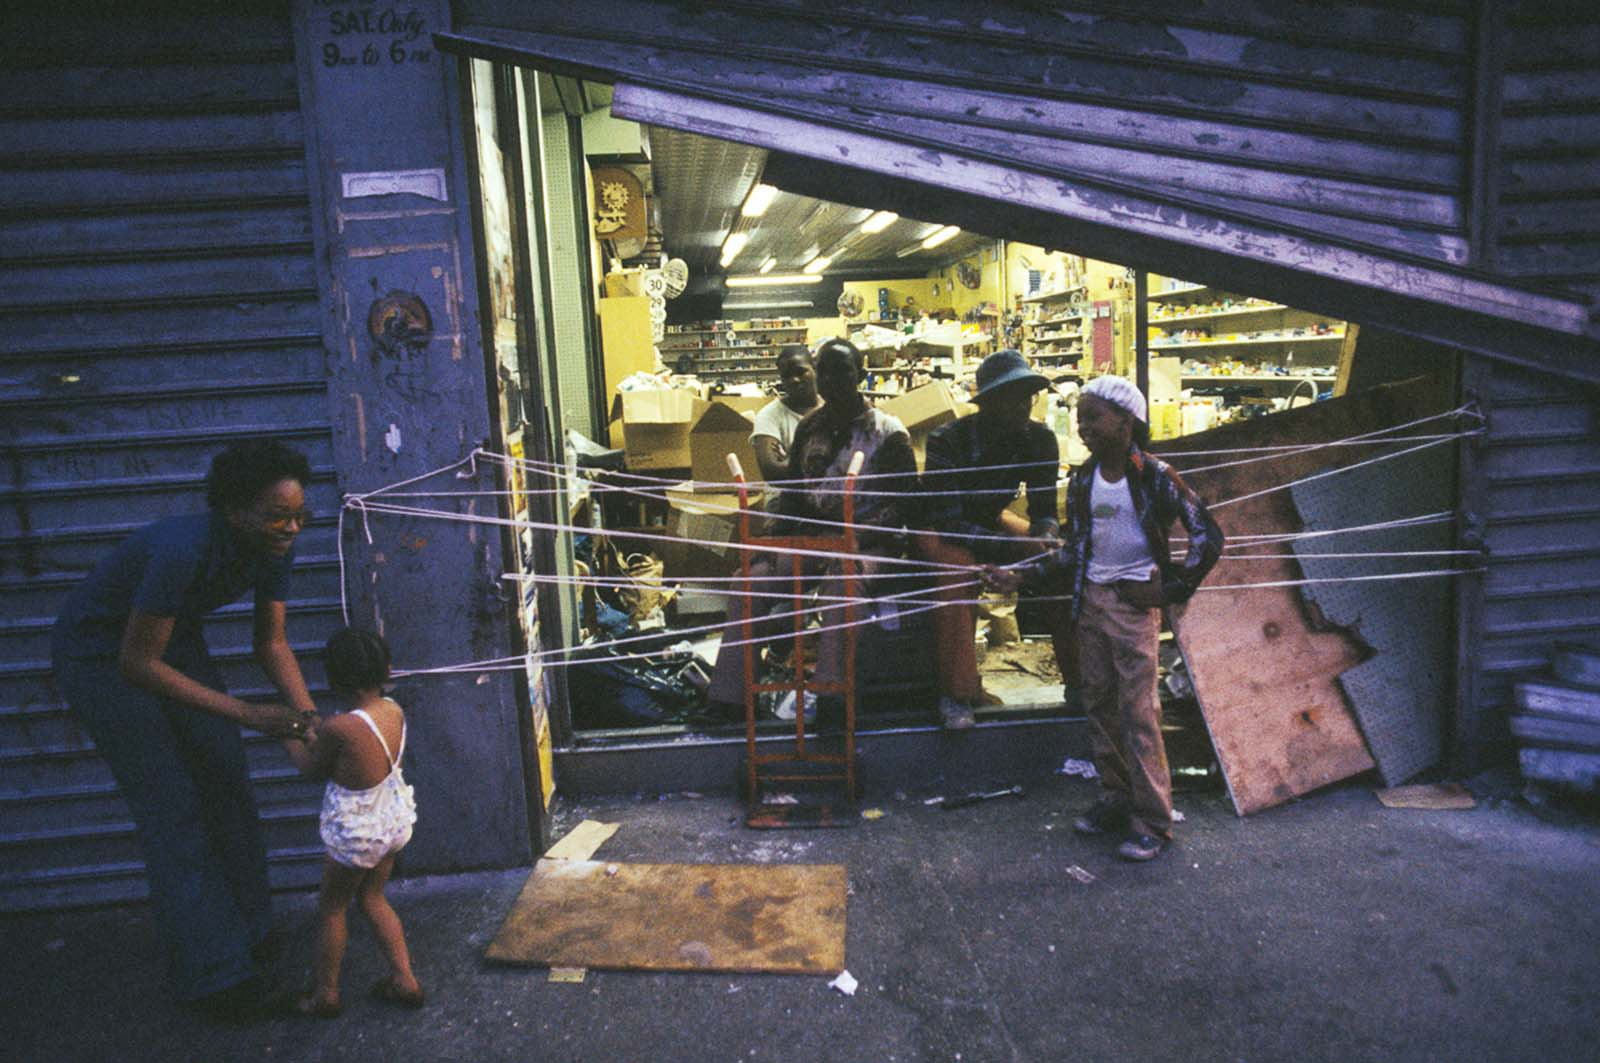 Store owners guard their damaged storefront against further looting.